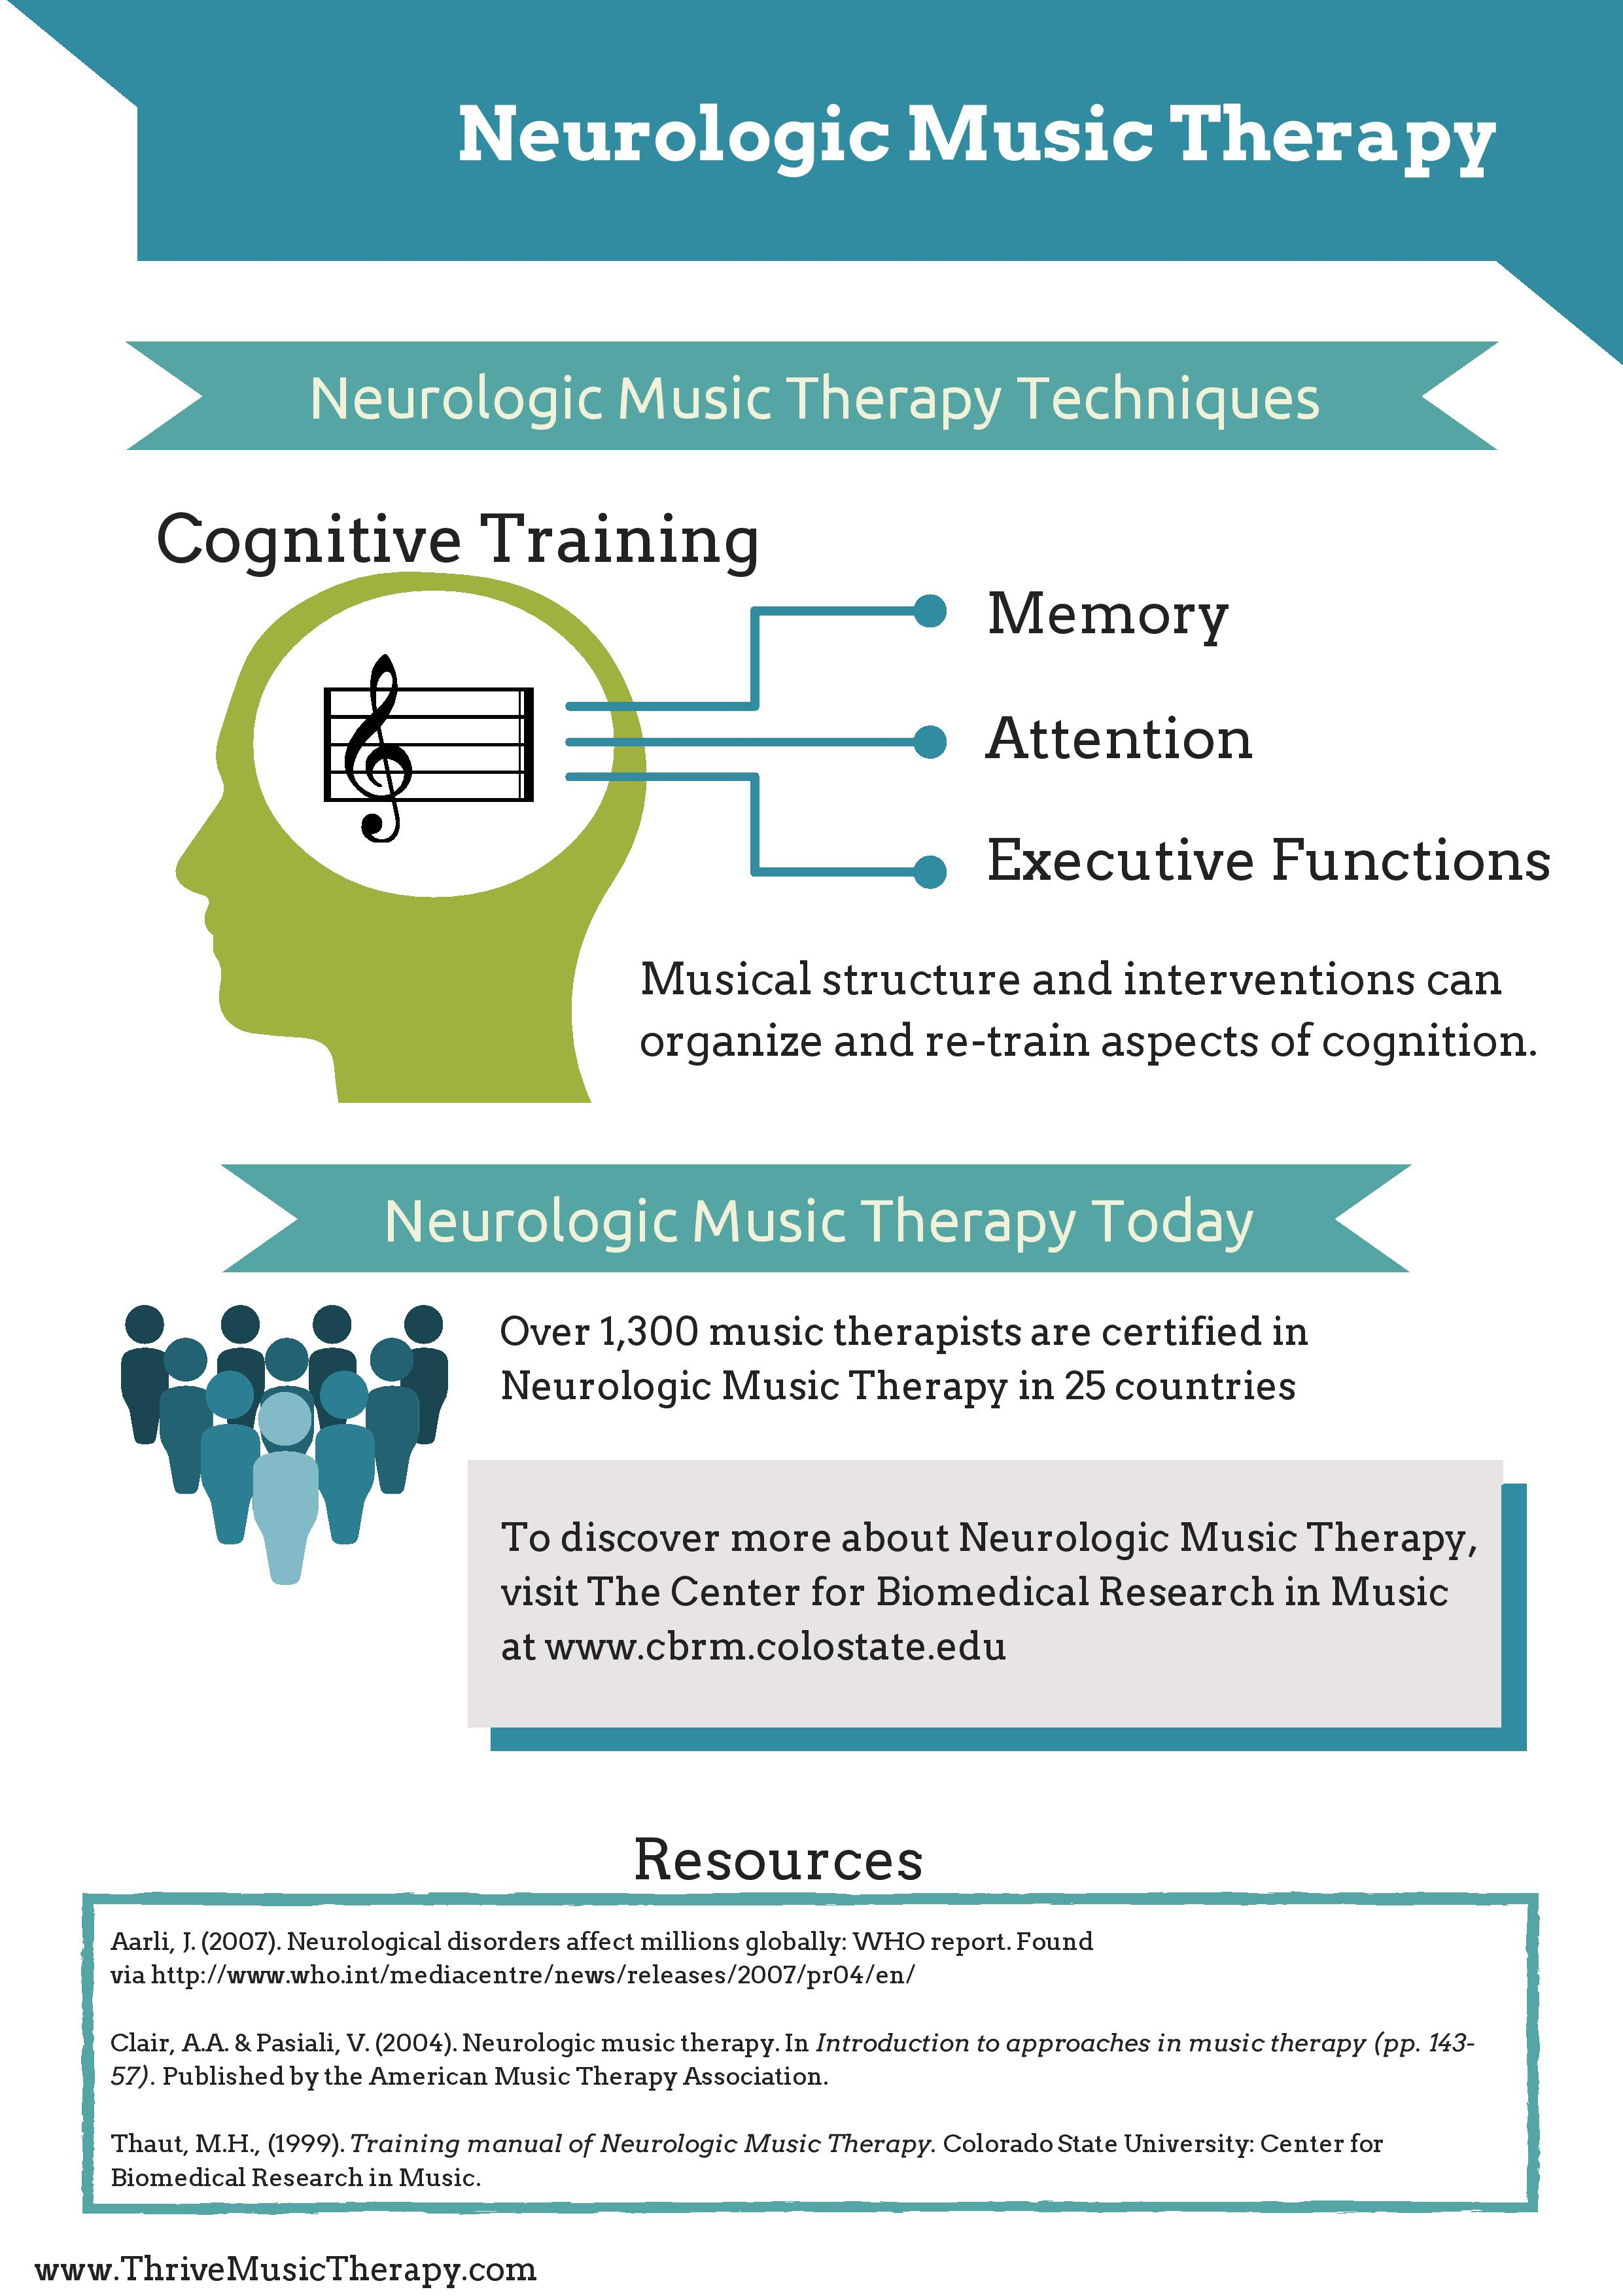 Neurologic Music Therapy Infographic Thrive Music Therapy